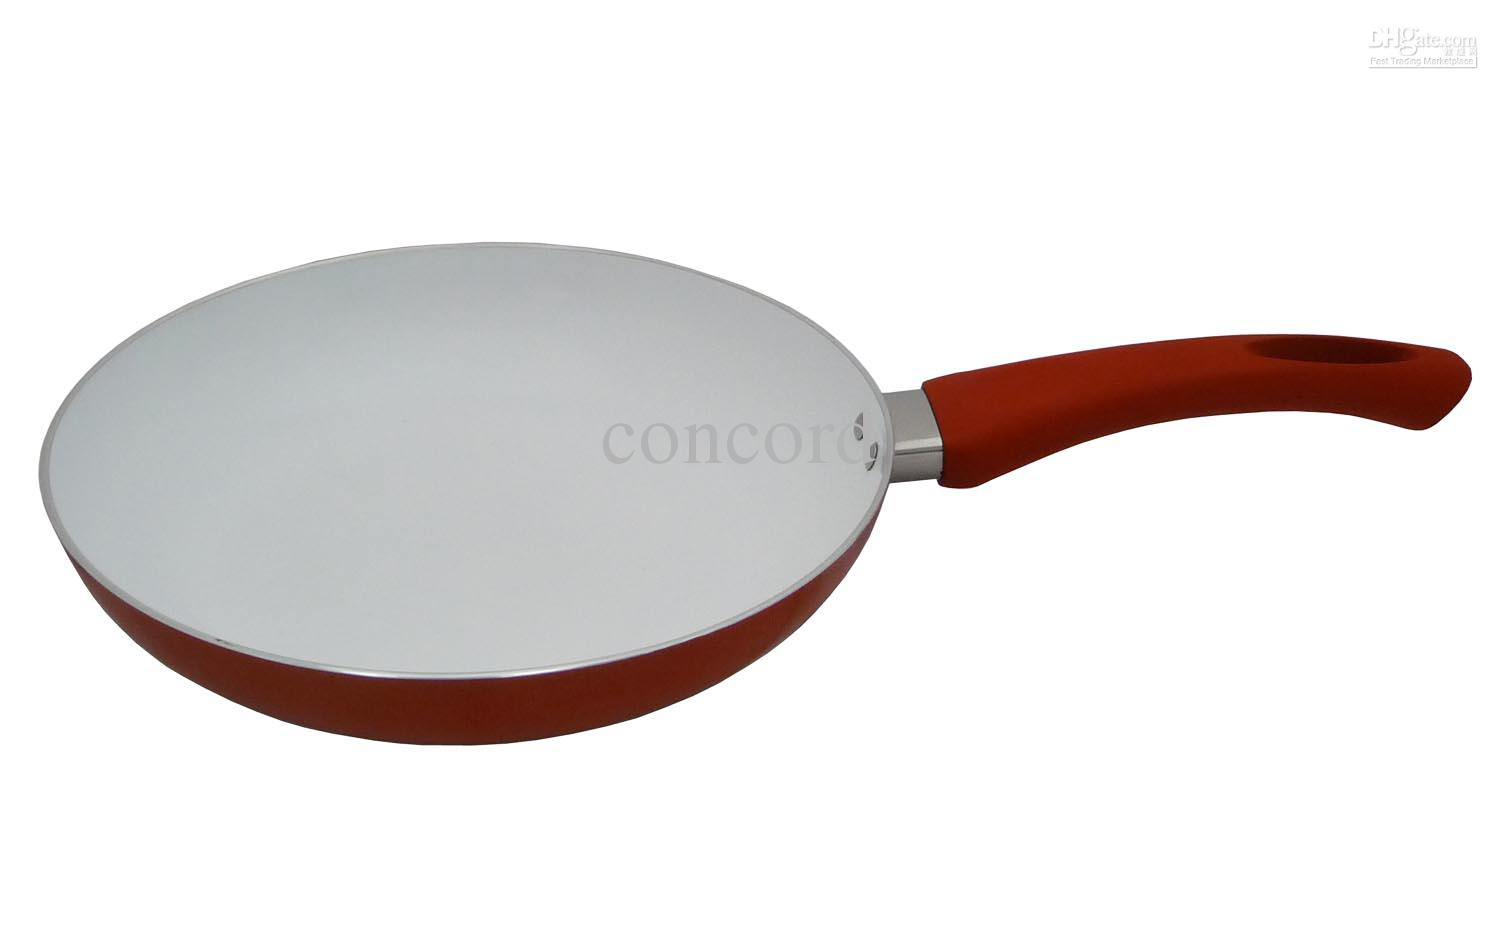 concord eco friendly ceramic 95 nonstick fry pan saute pan cookware dropship buy cheap frying pans for sale frying pans on sale from concord - Non Stick Frying Pan